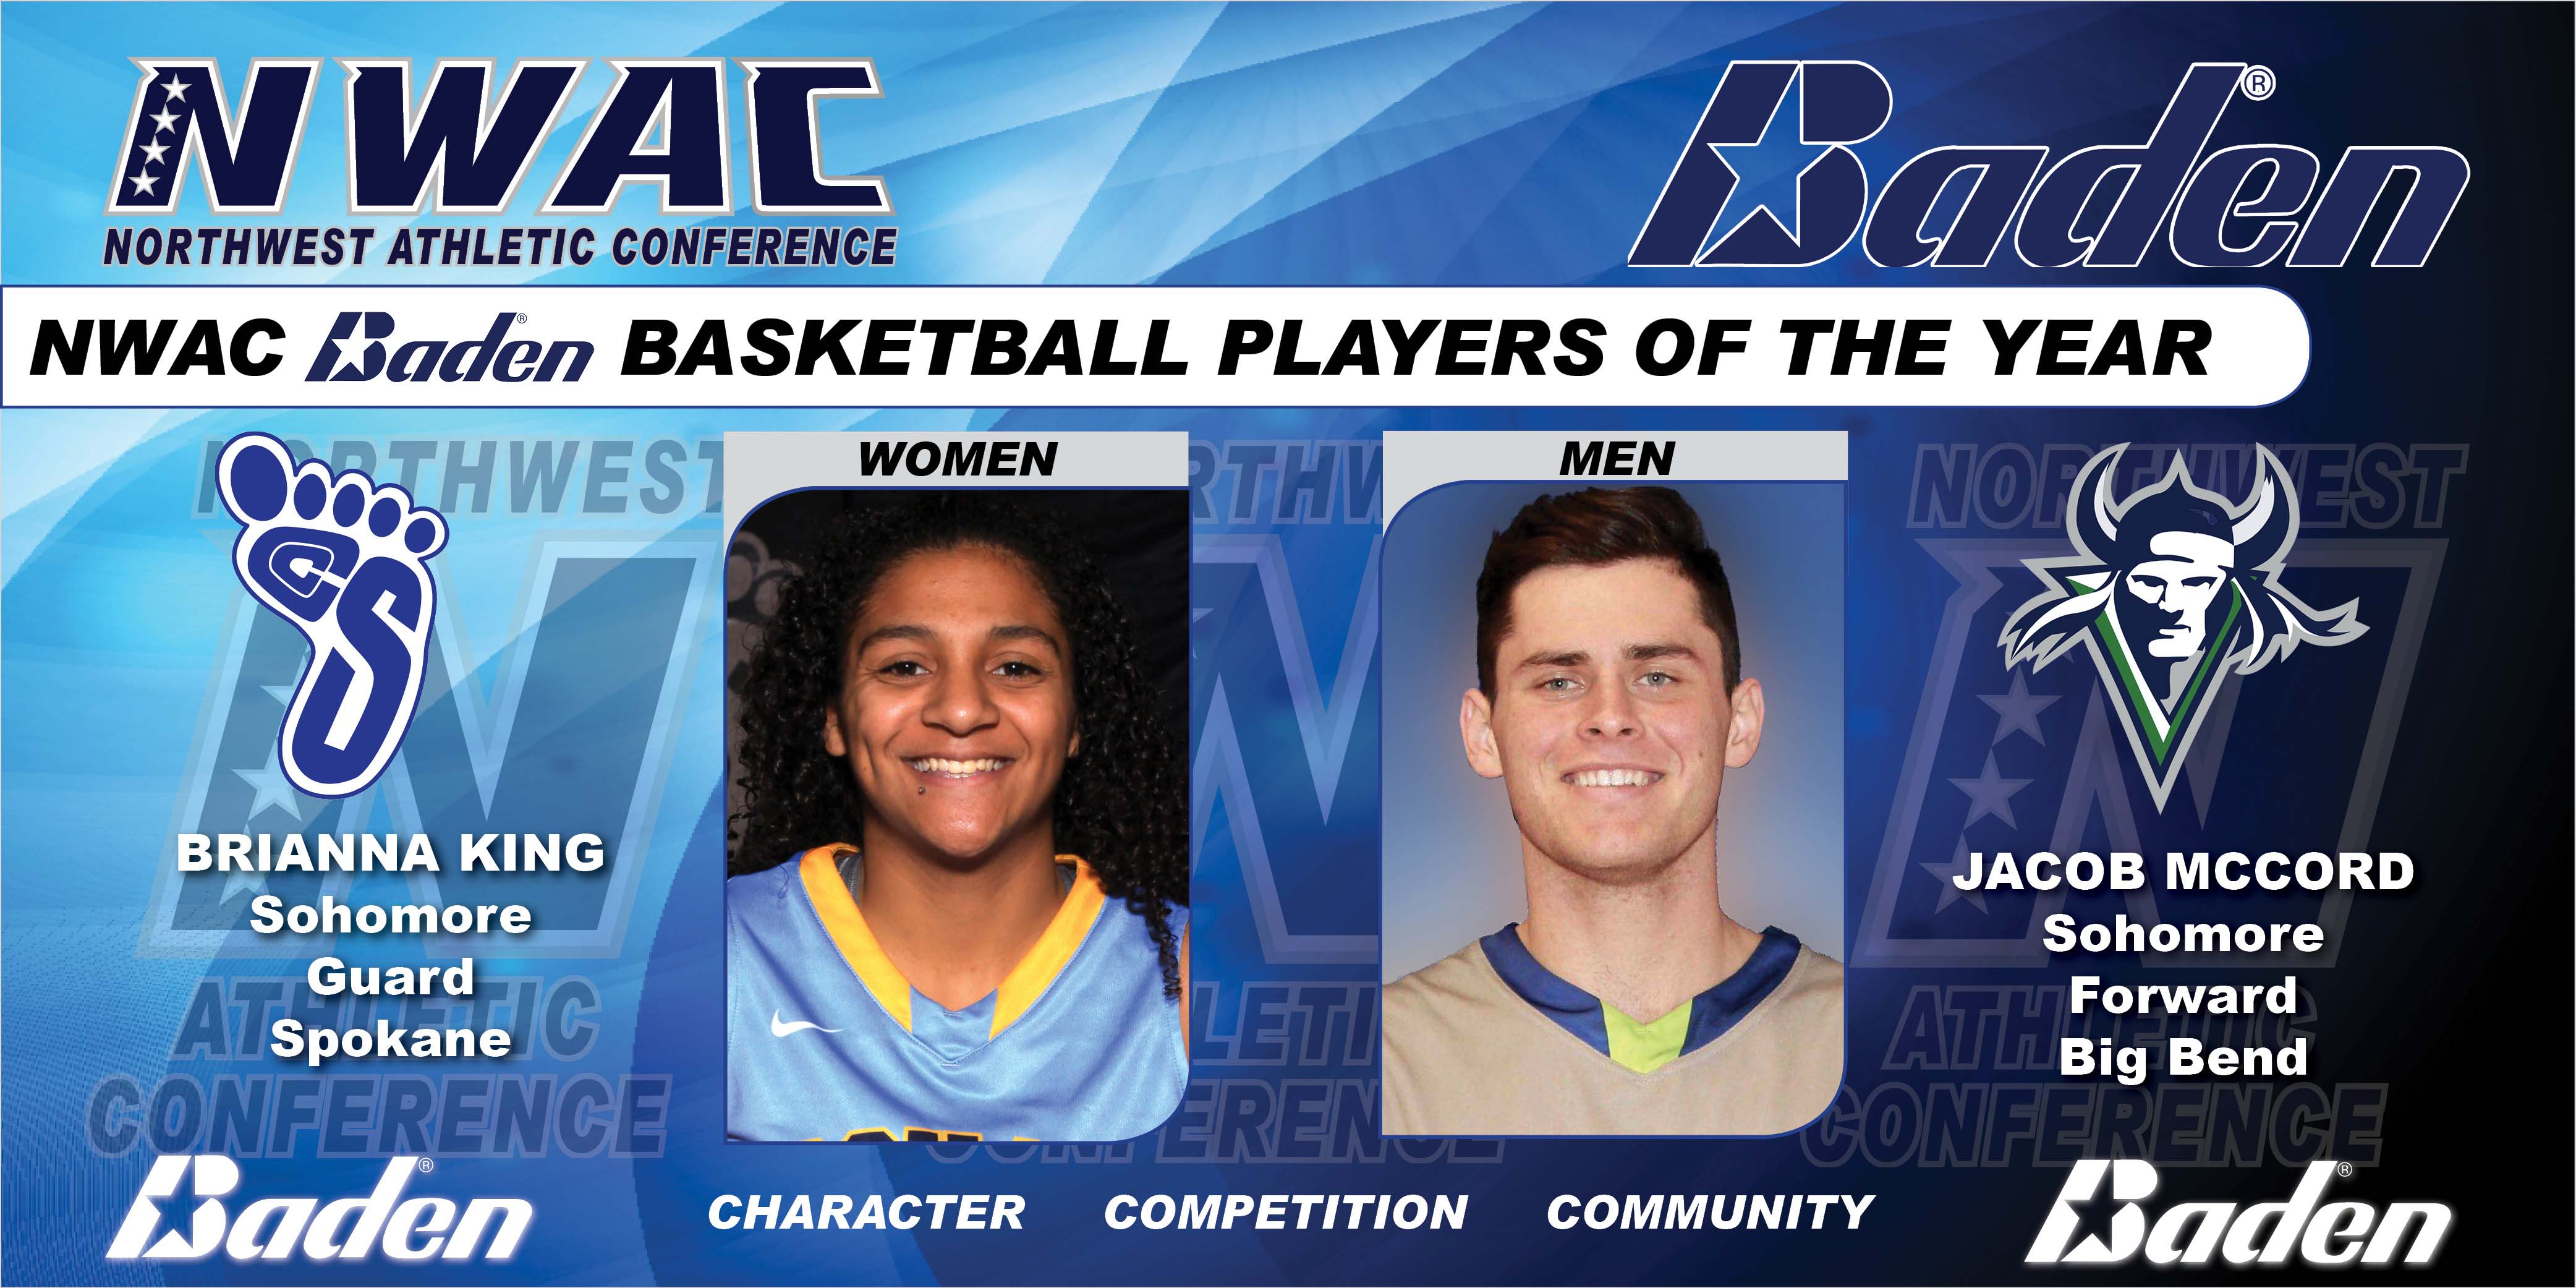 Baden NWAC Basketball  Players of the Year graphic